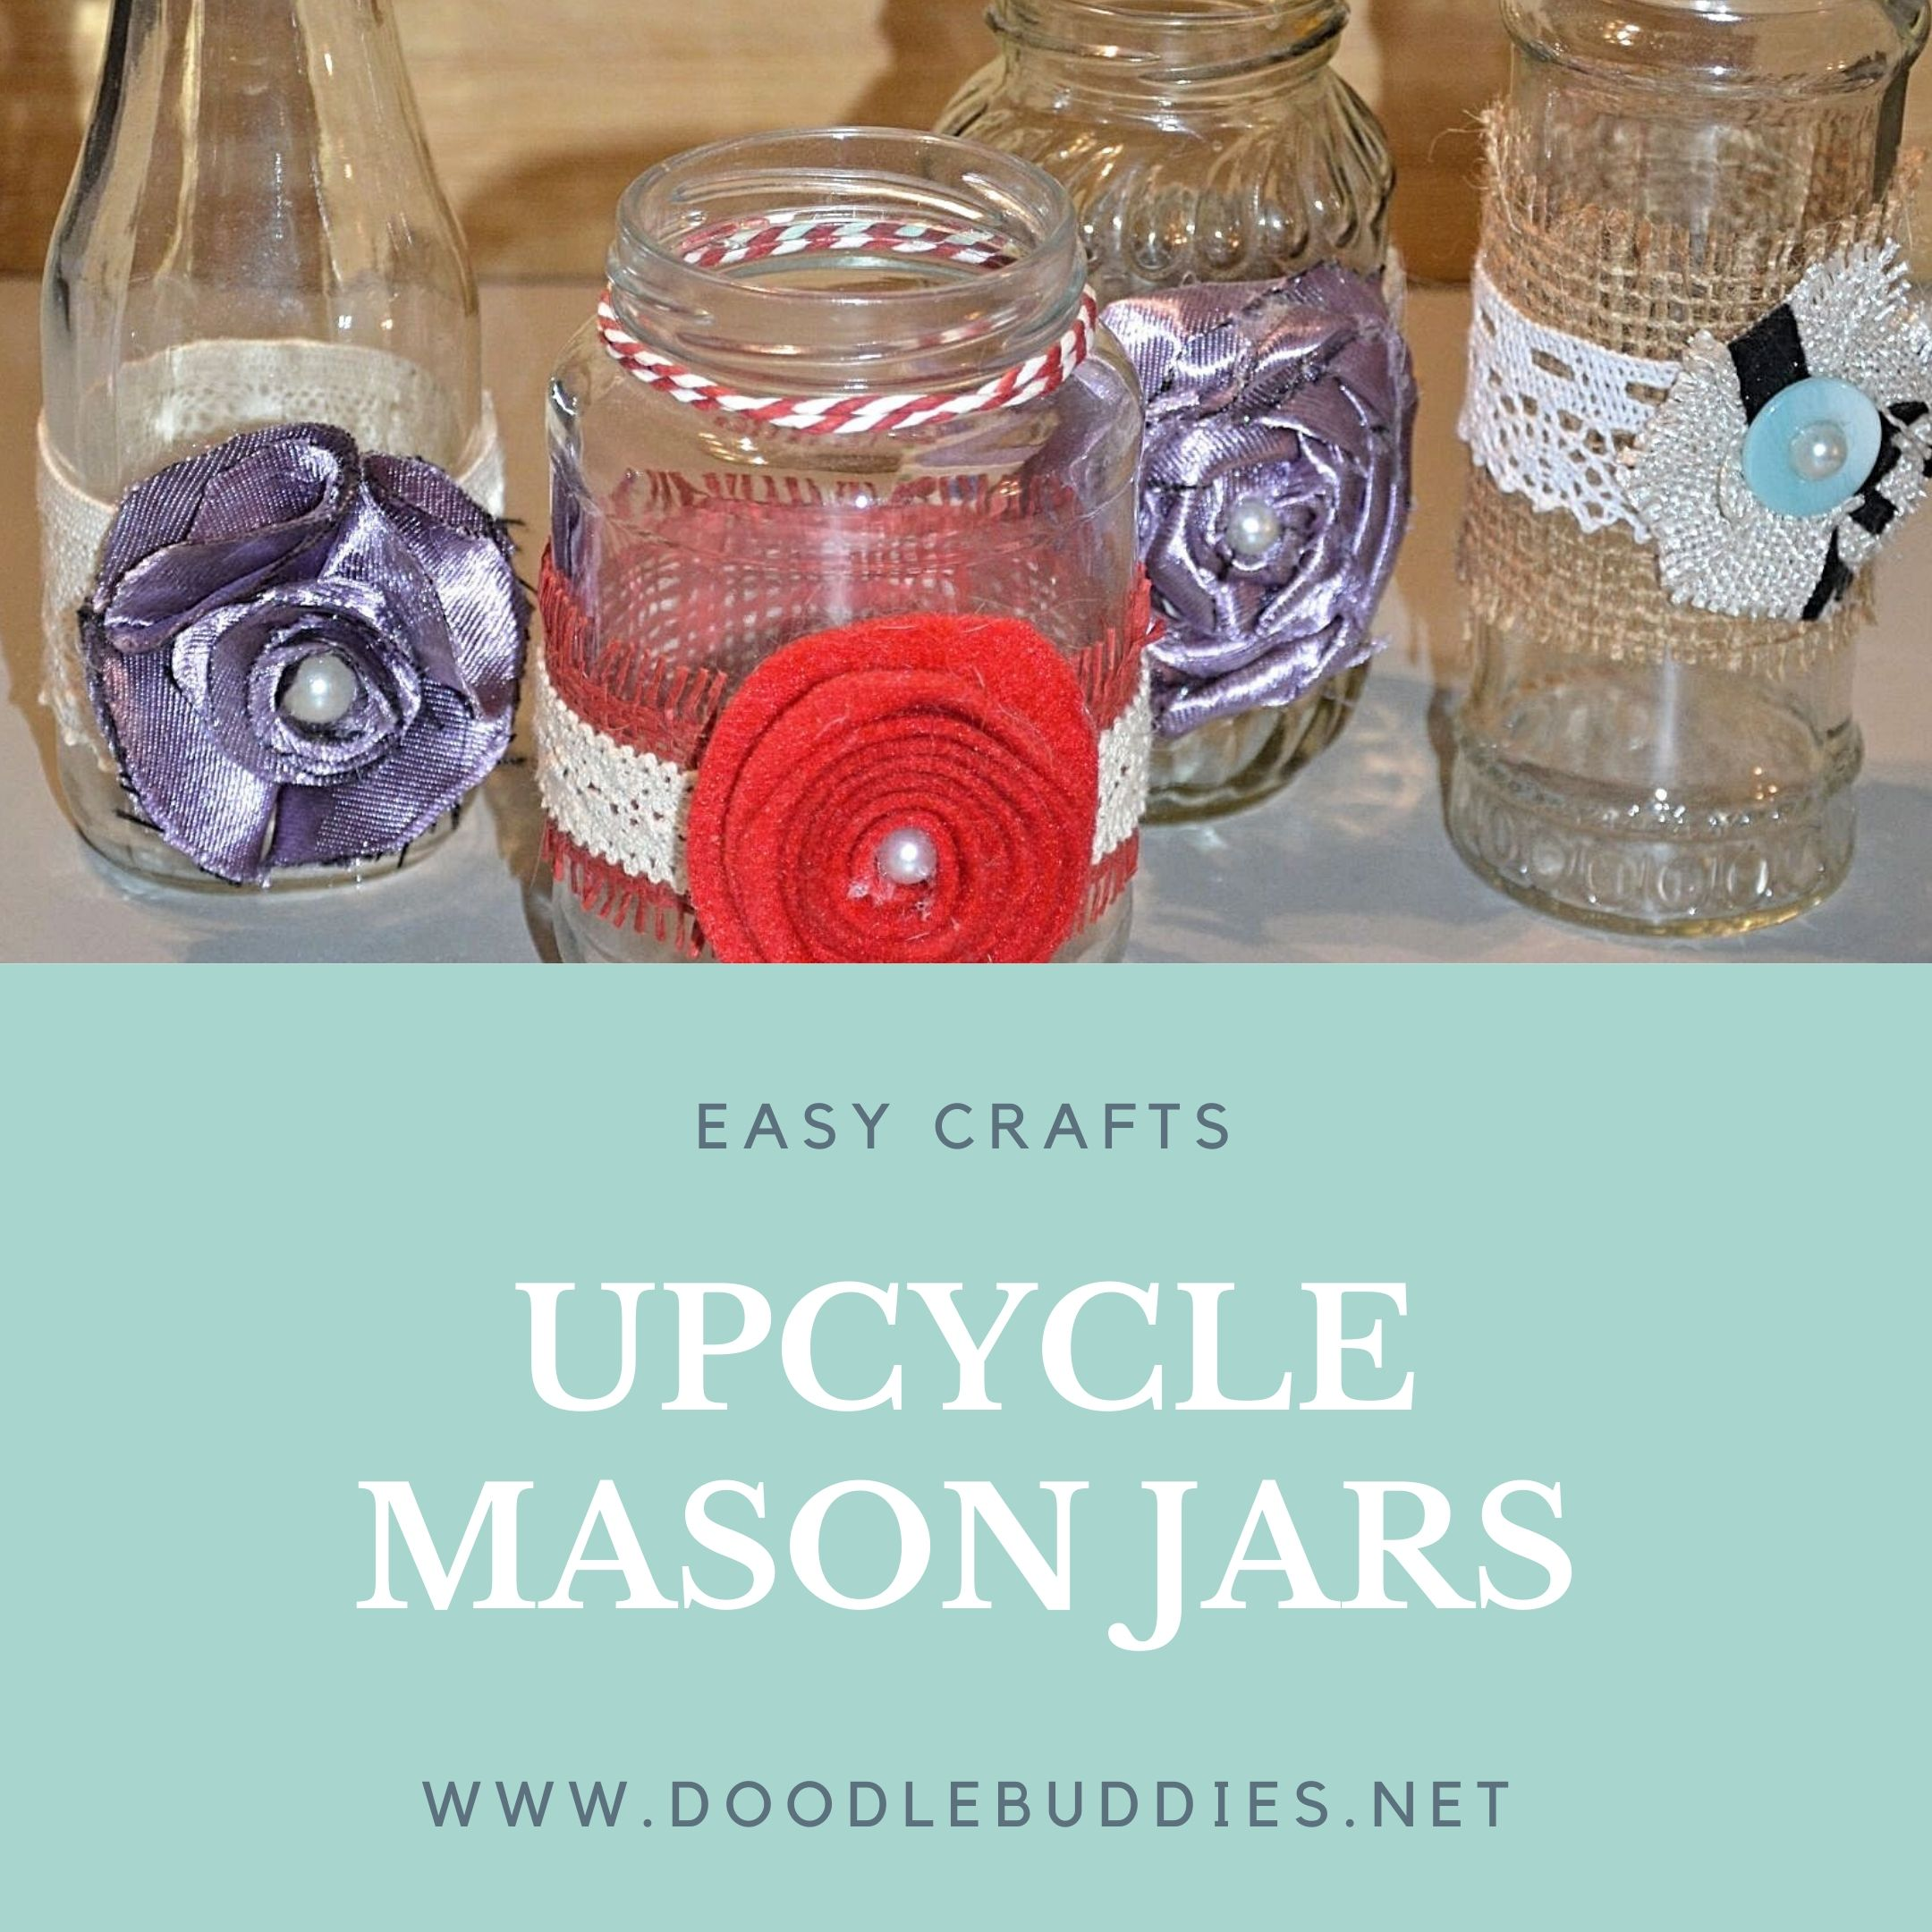 Upcycled Mason Jars